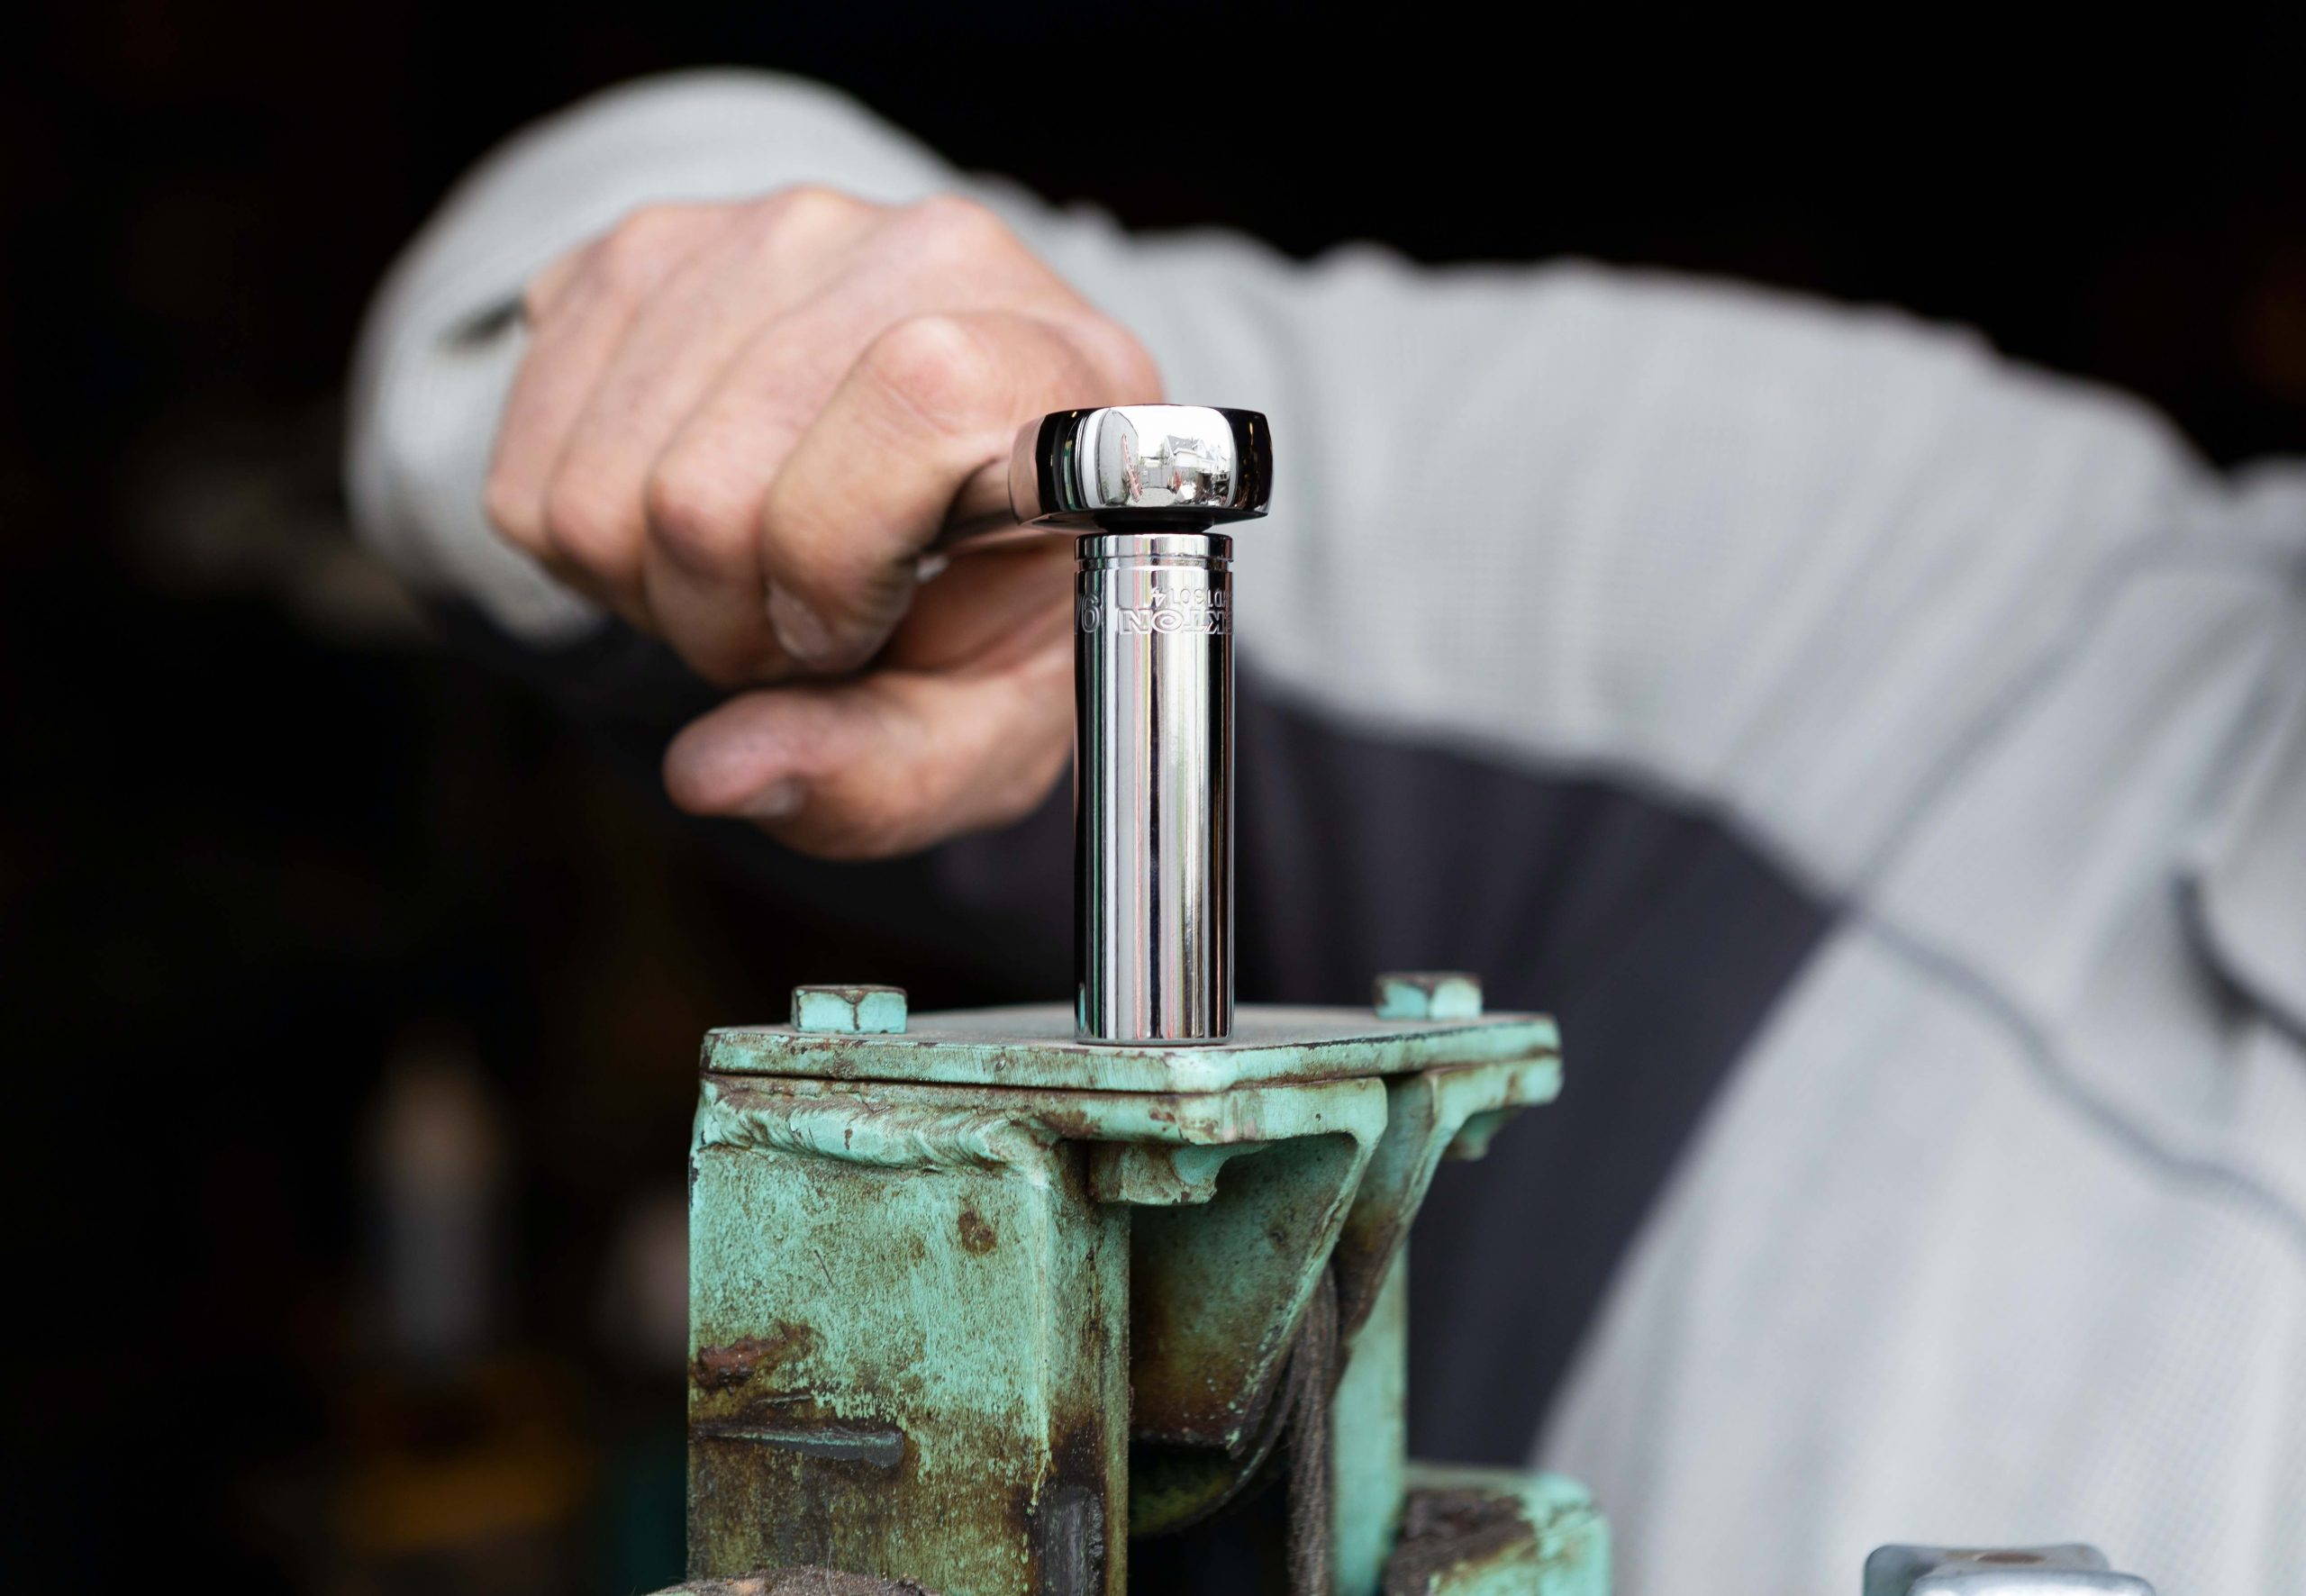 Everything you need to know about choosing and using a torque wrench